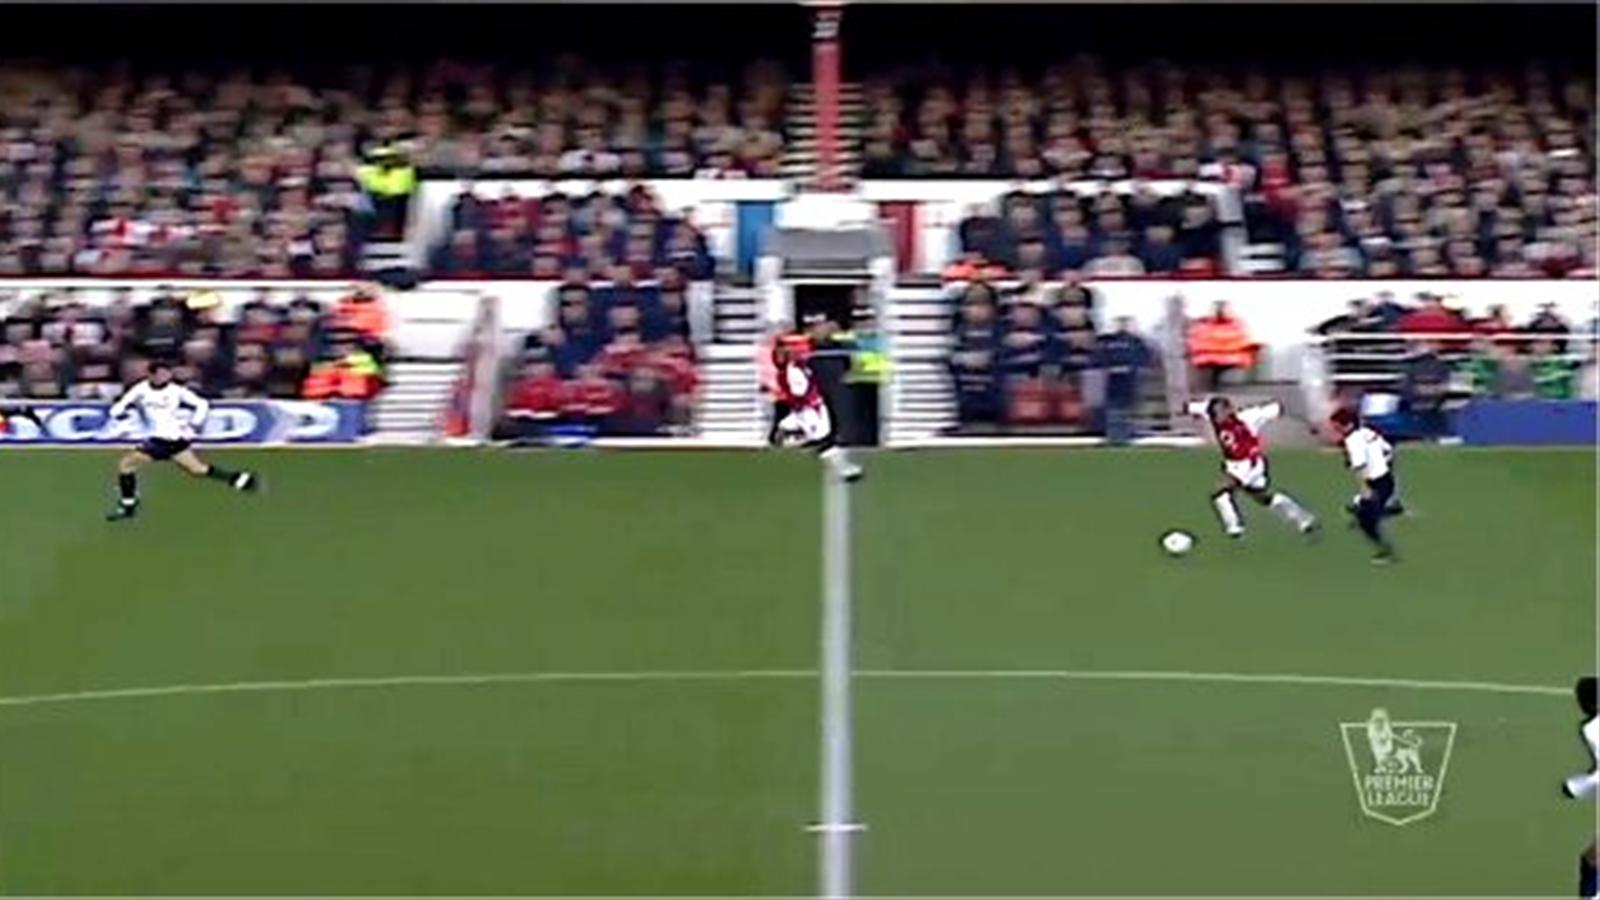 Thierry Henry's famous derby goal for Arsenal against Tottenham in 2002 (Premier League)